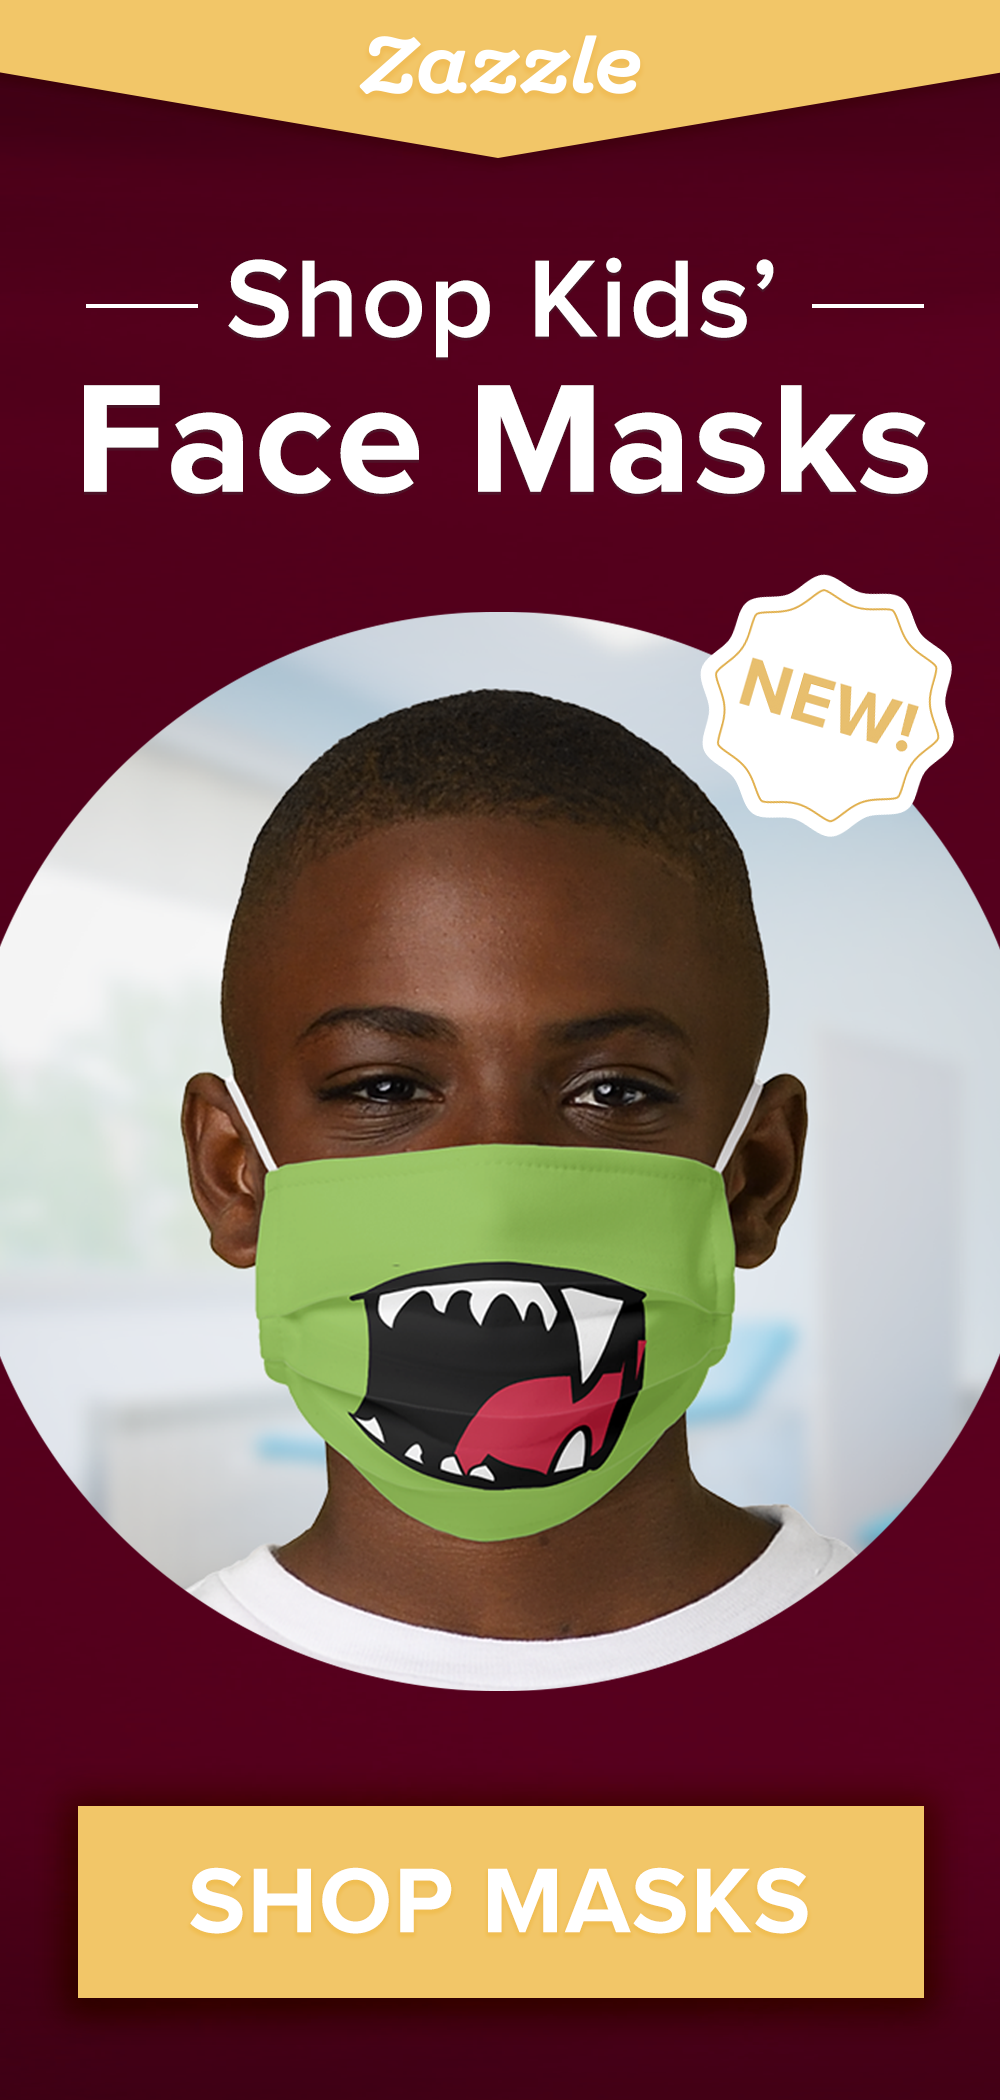 Introducing face masks for kids! Masks are easily adjustable to fit perfectly around your child's face and ears. Browse thousands of designs including cute, funny, superheroes, holiday designs and more.